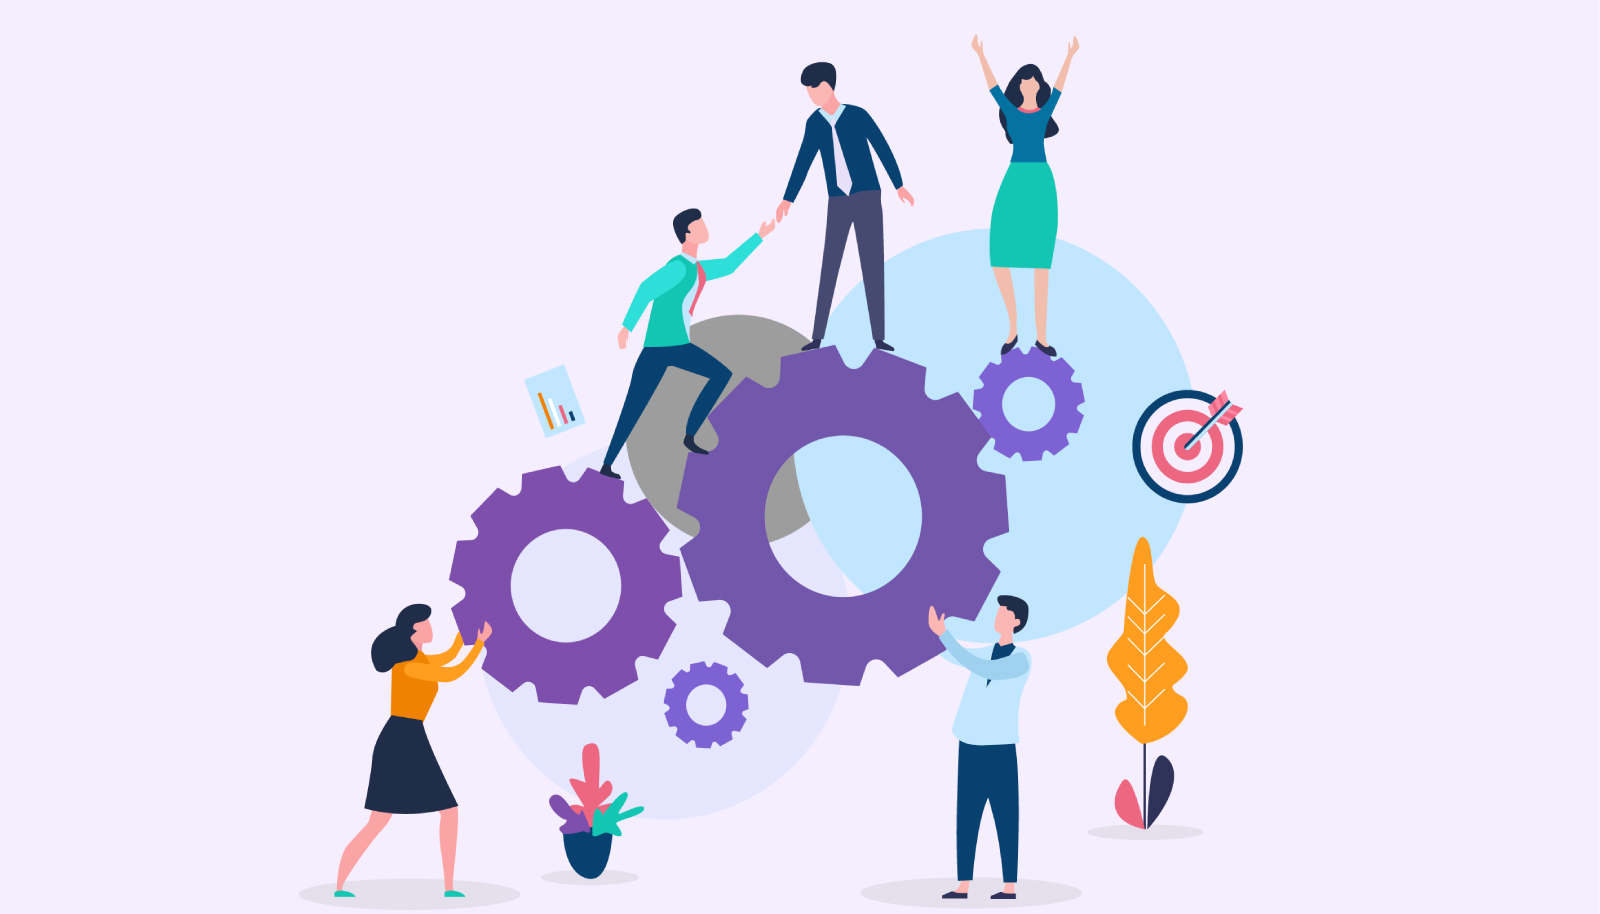 Encourages-Team-Work-And-Improves-Productivity